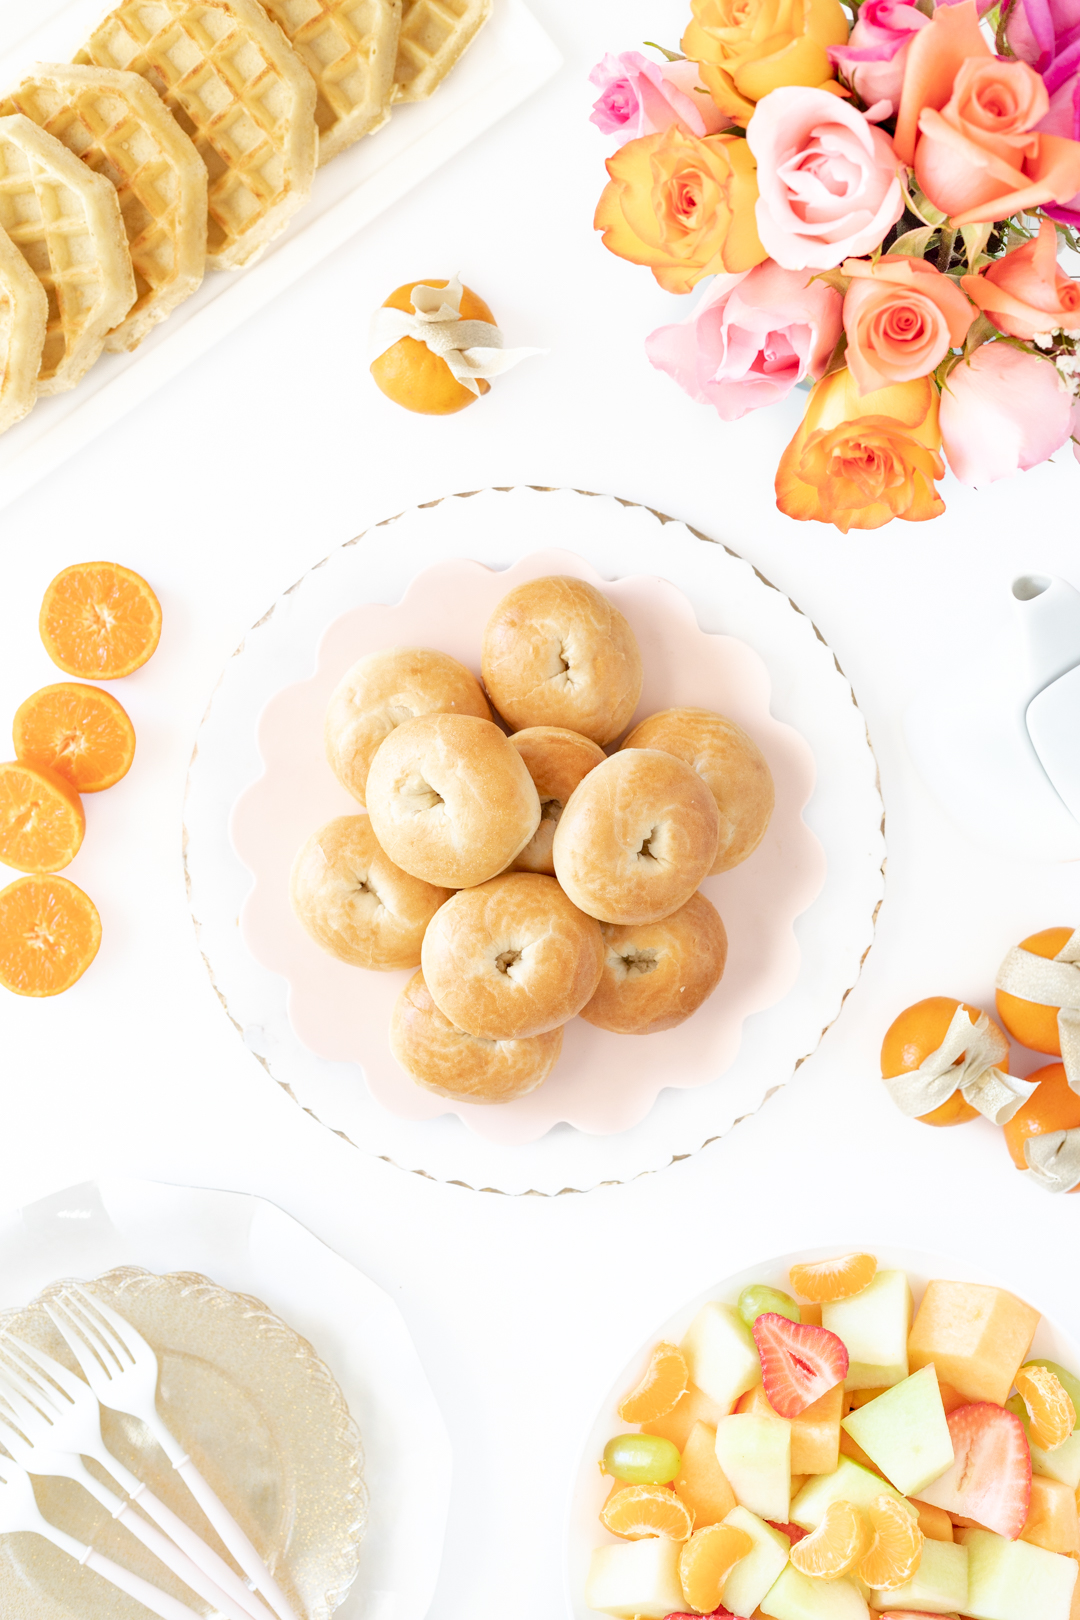 mini bagels on brunch table